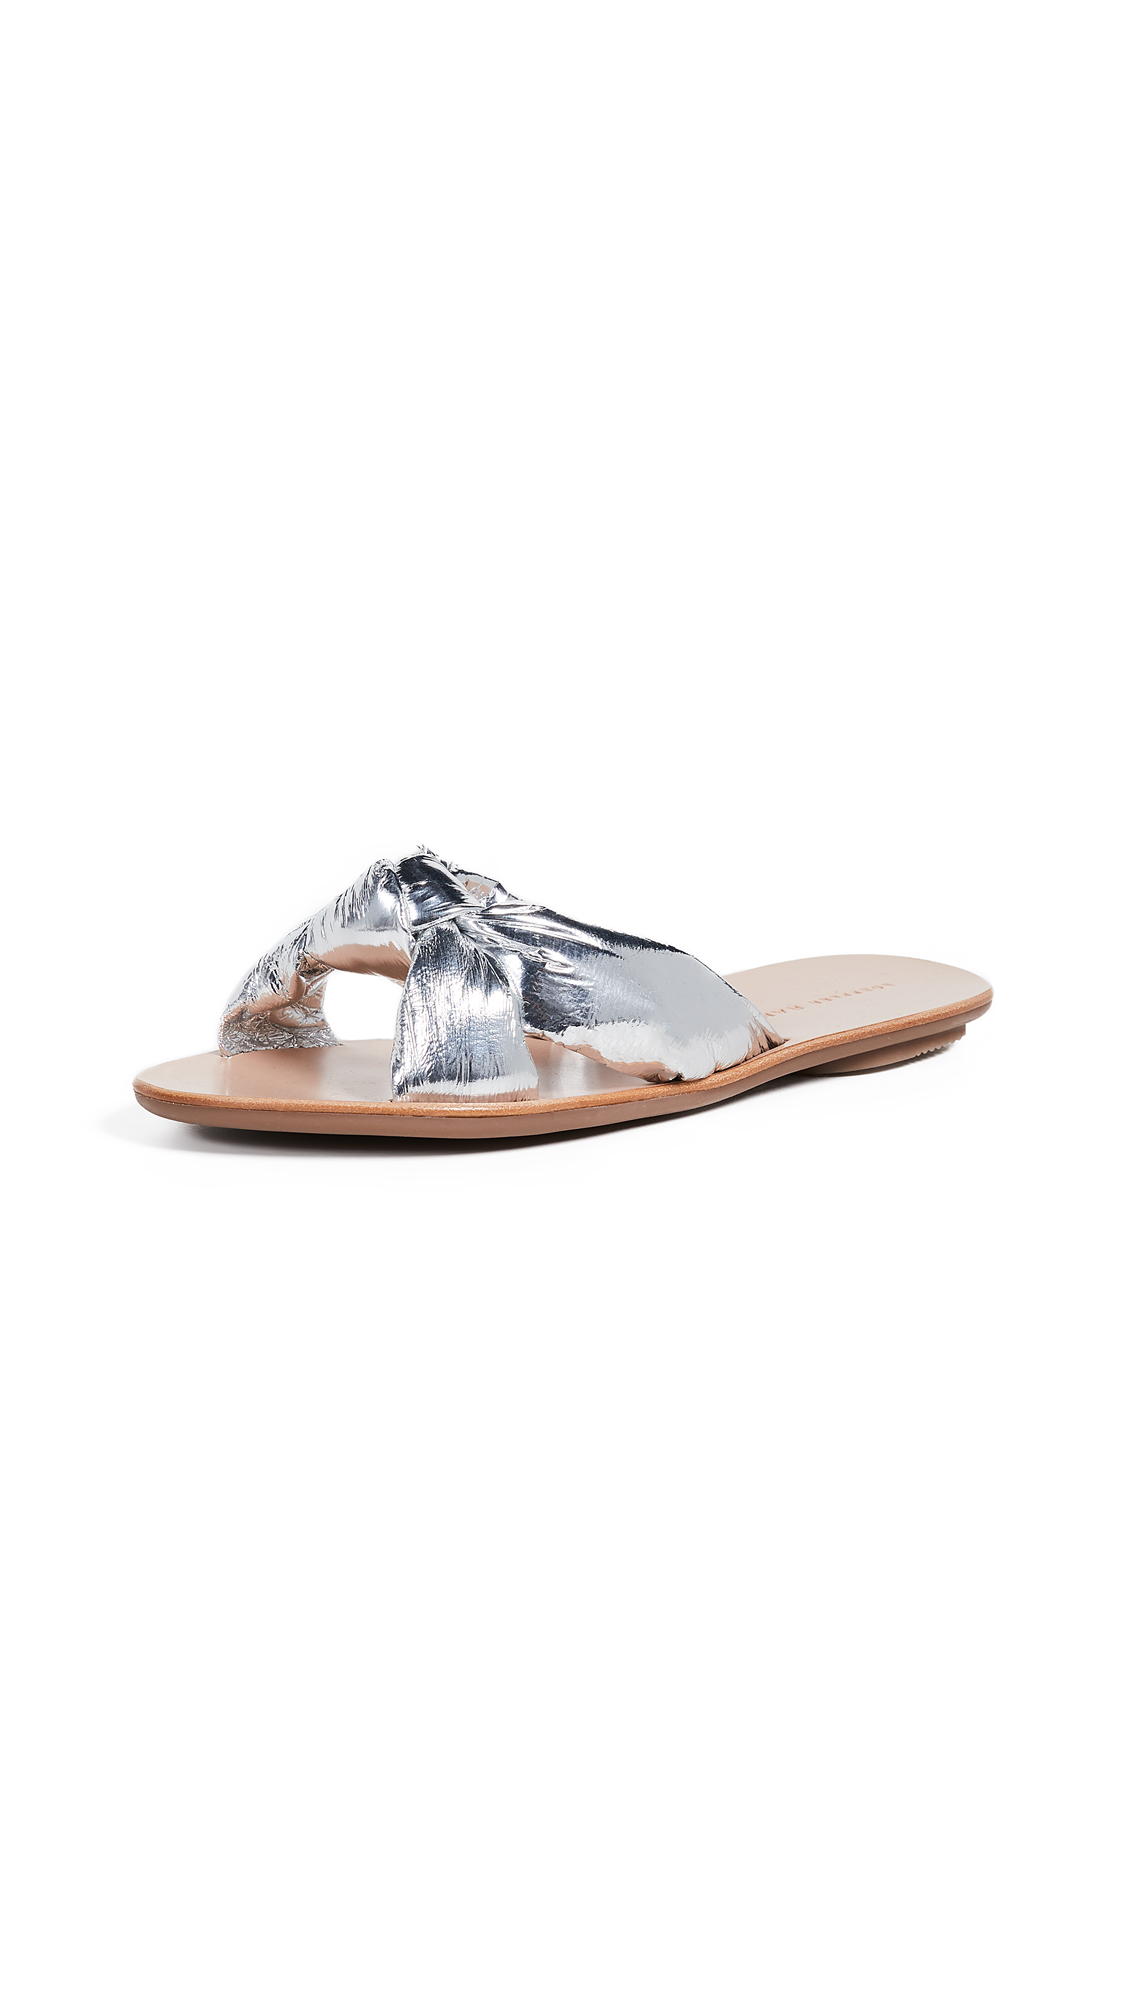 Photo of Loeffler Randall Iris Knotted Slides online shoes sales